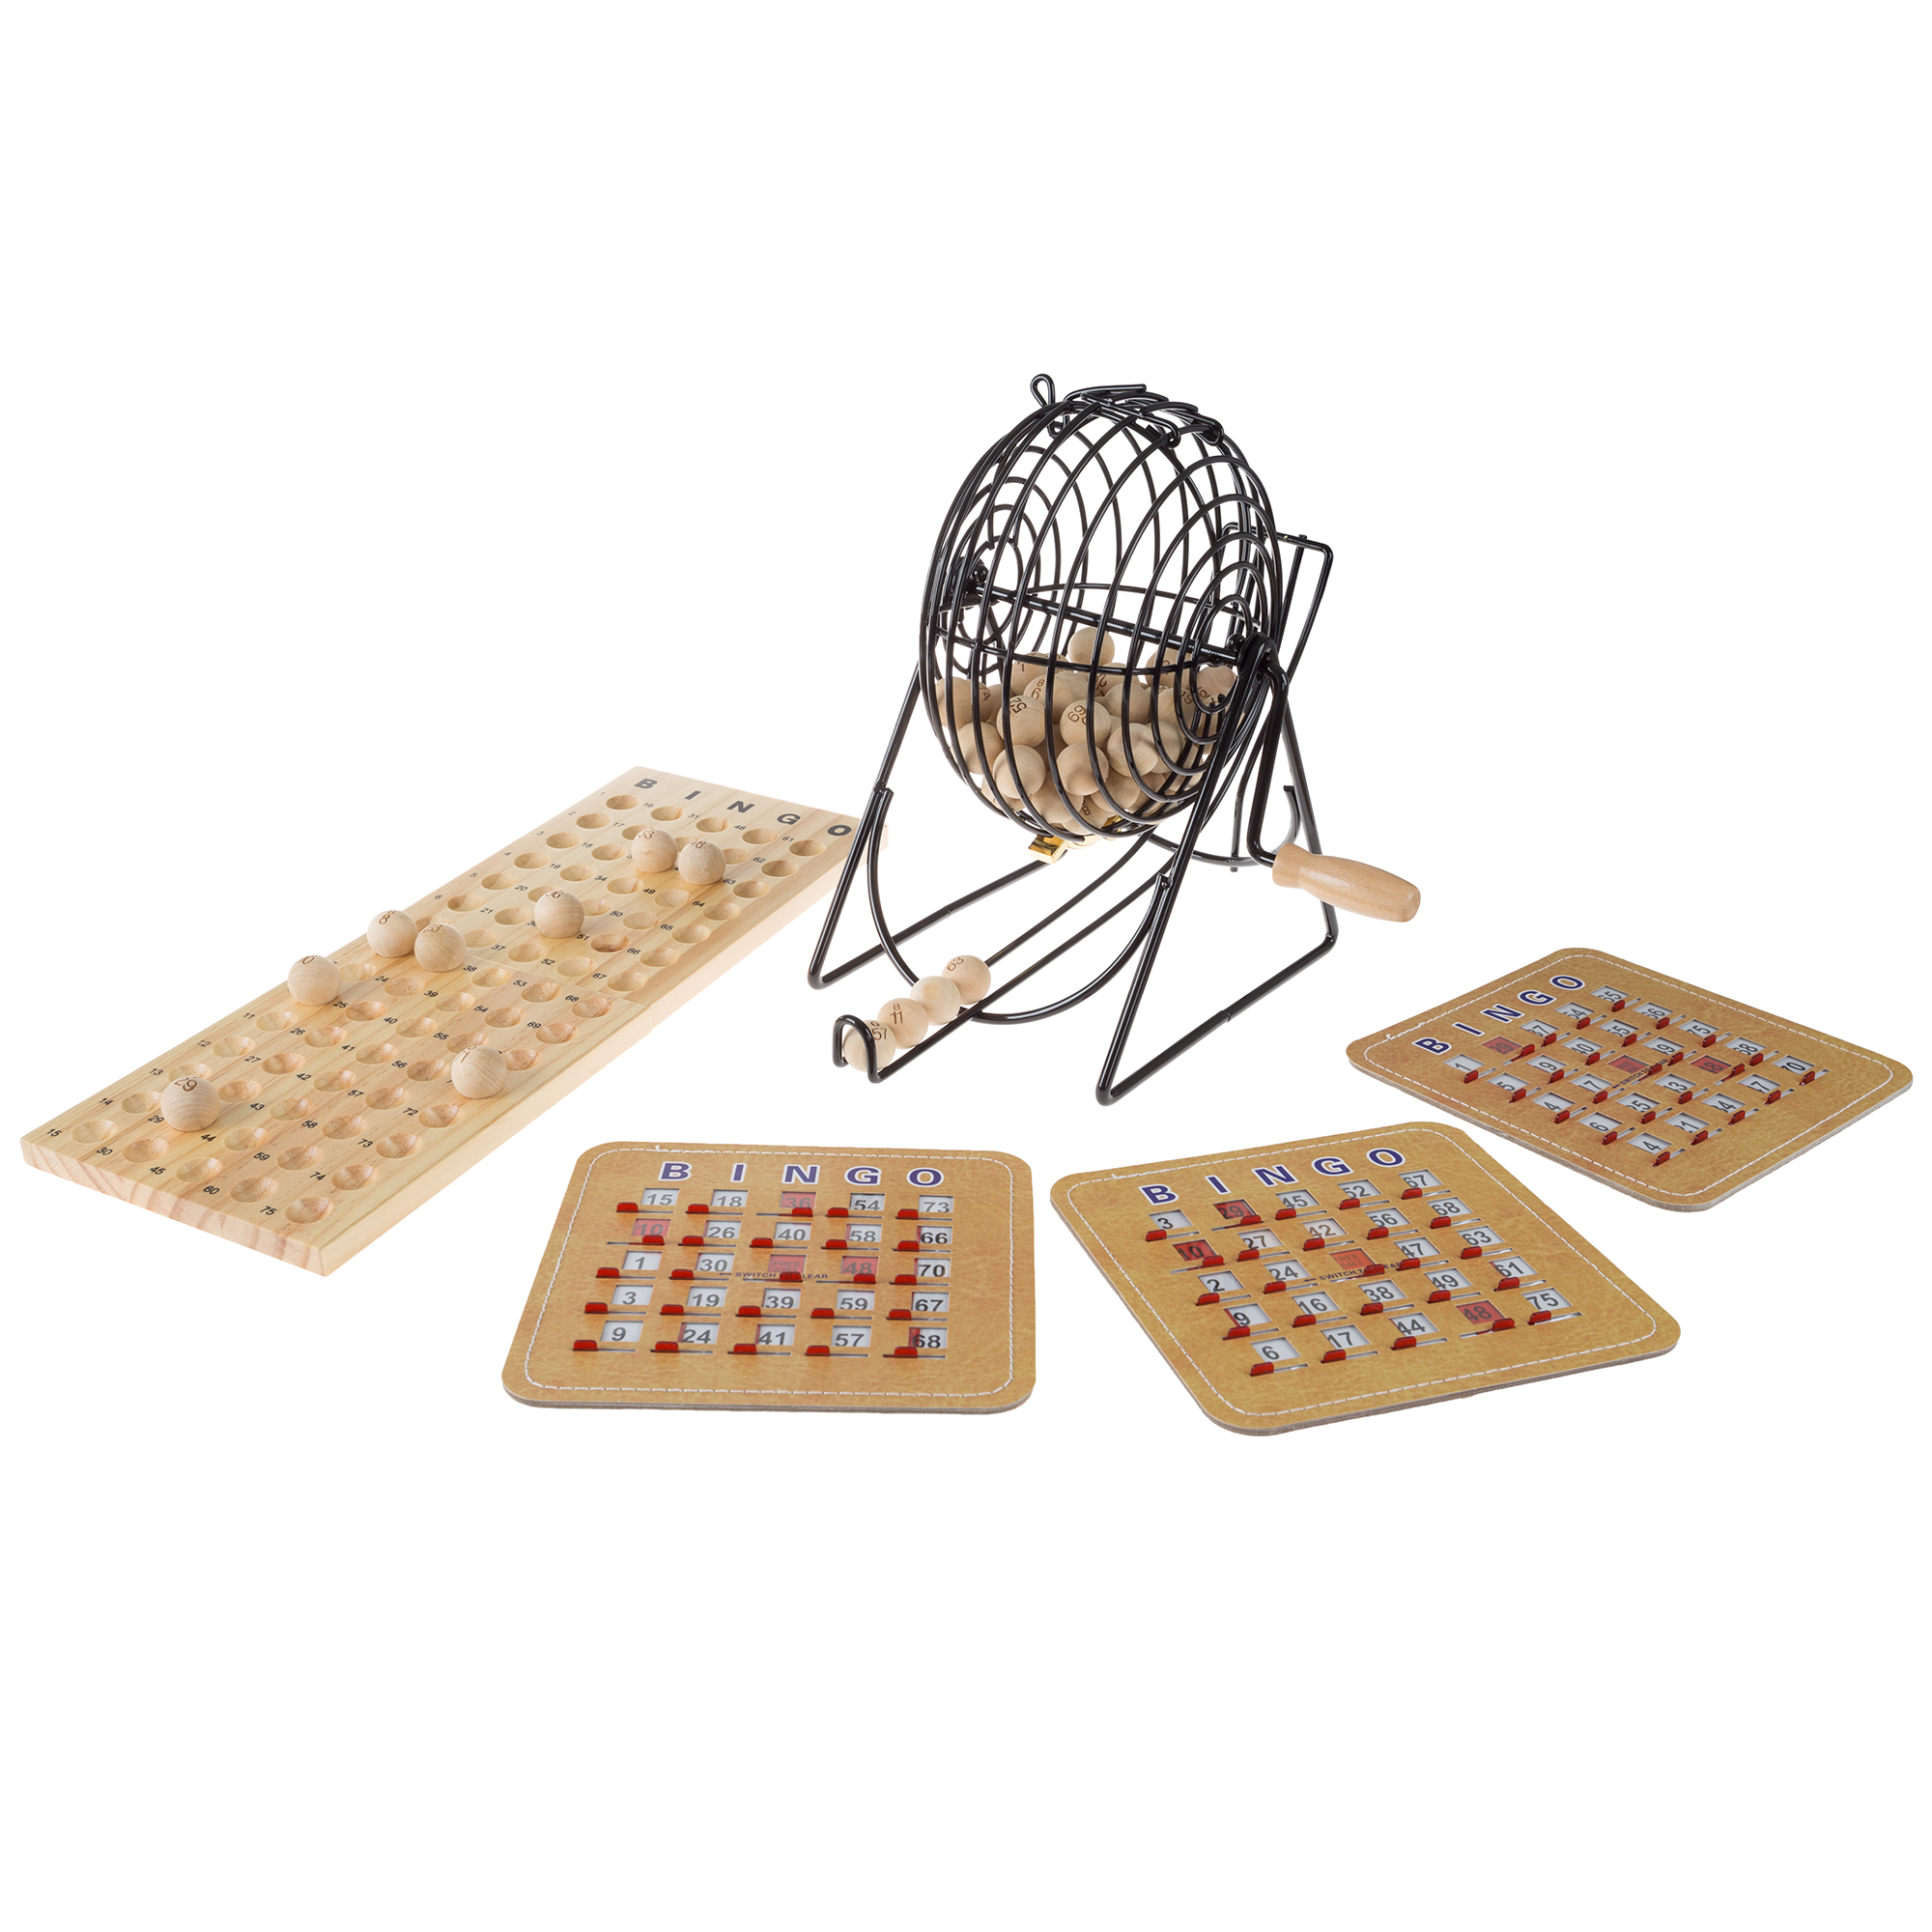 Deluxe Bingo Game with Accessories, Metal Ball Spinner, Wooden Bingo Balls & Board & Shutter Bingo Cards by Hey! Play!